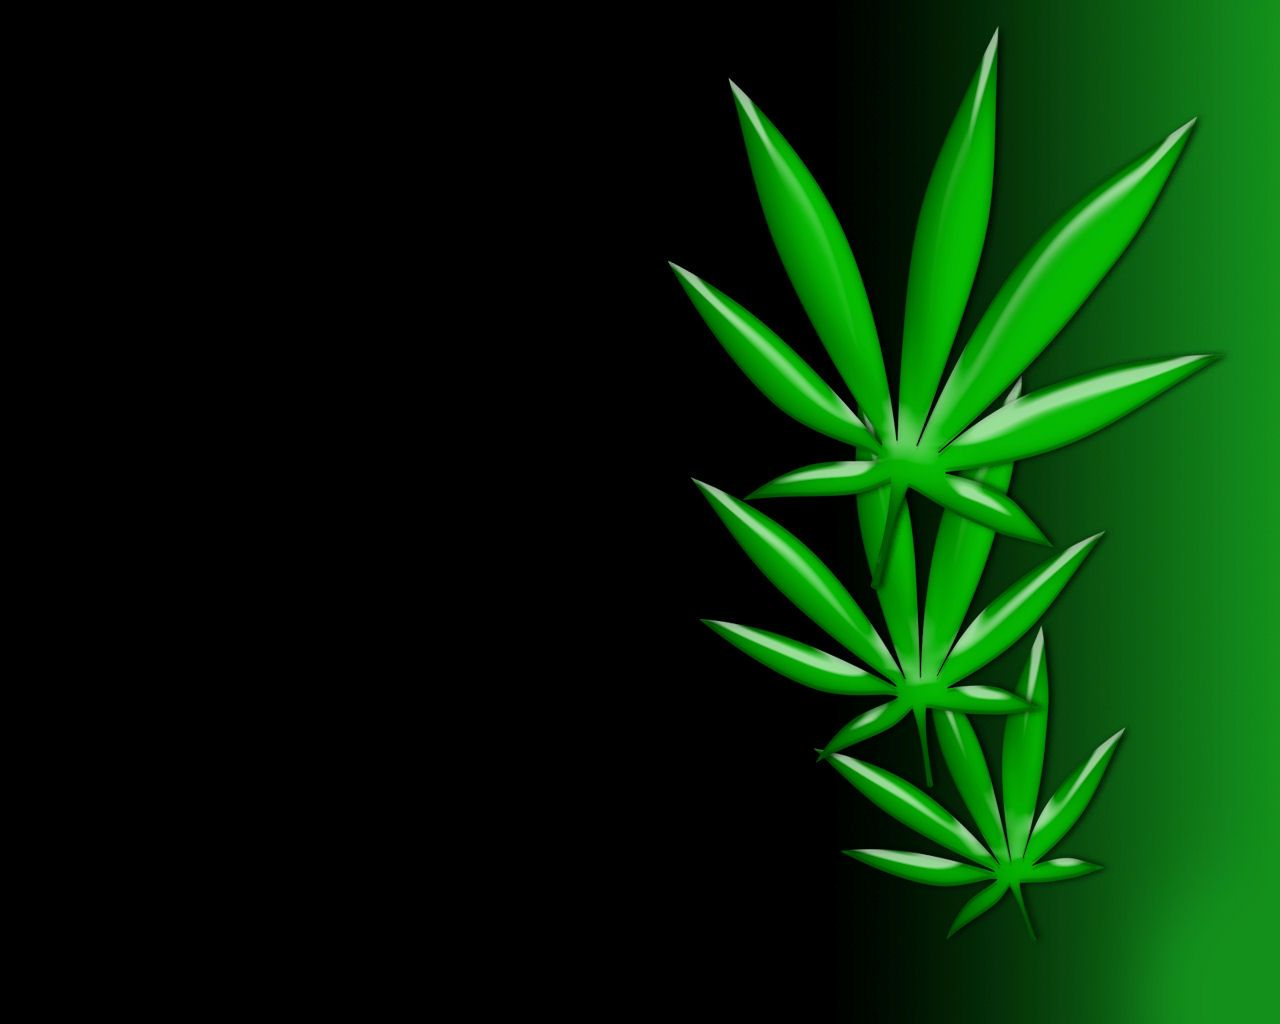 cannabis plant wallpaper black - photo #43